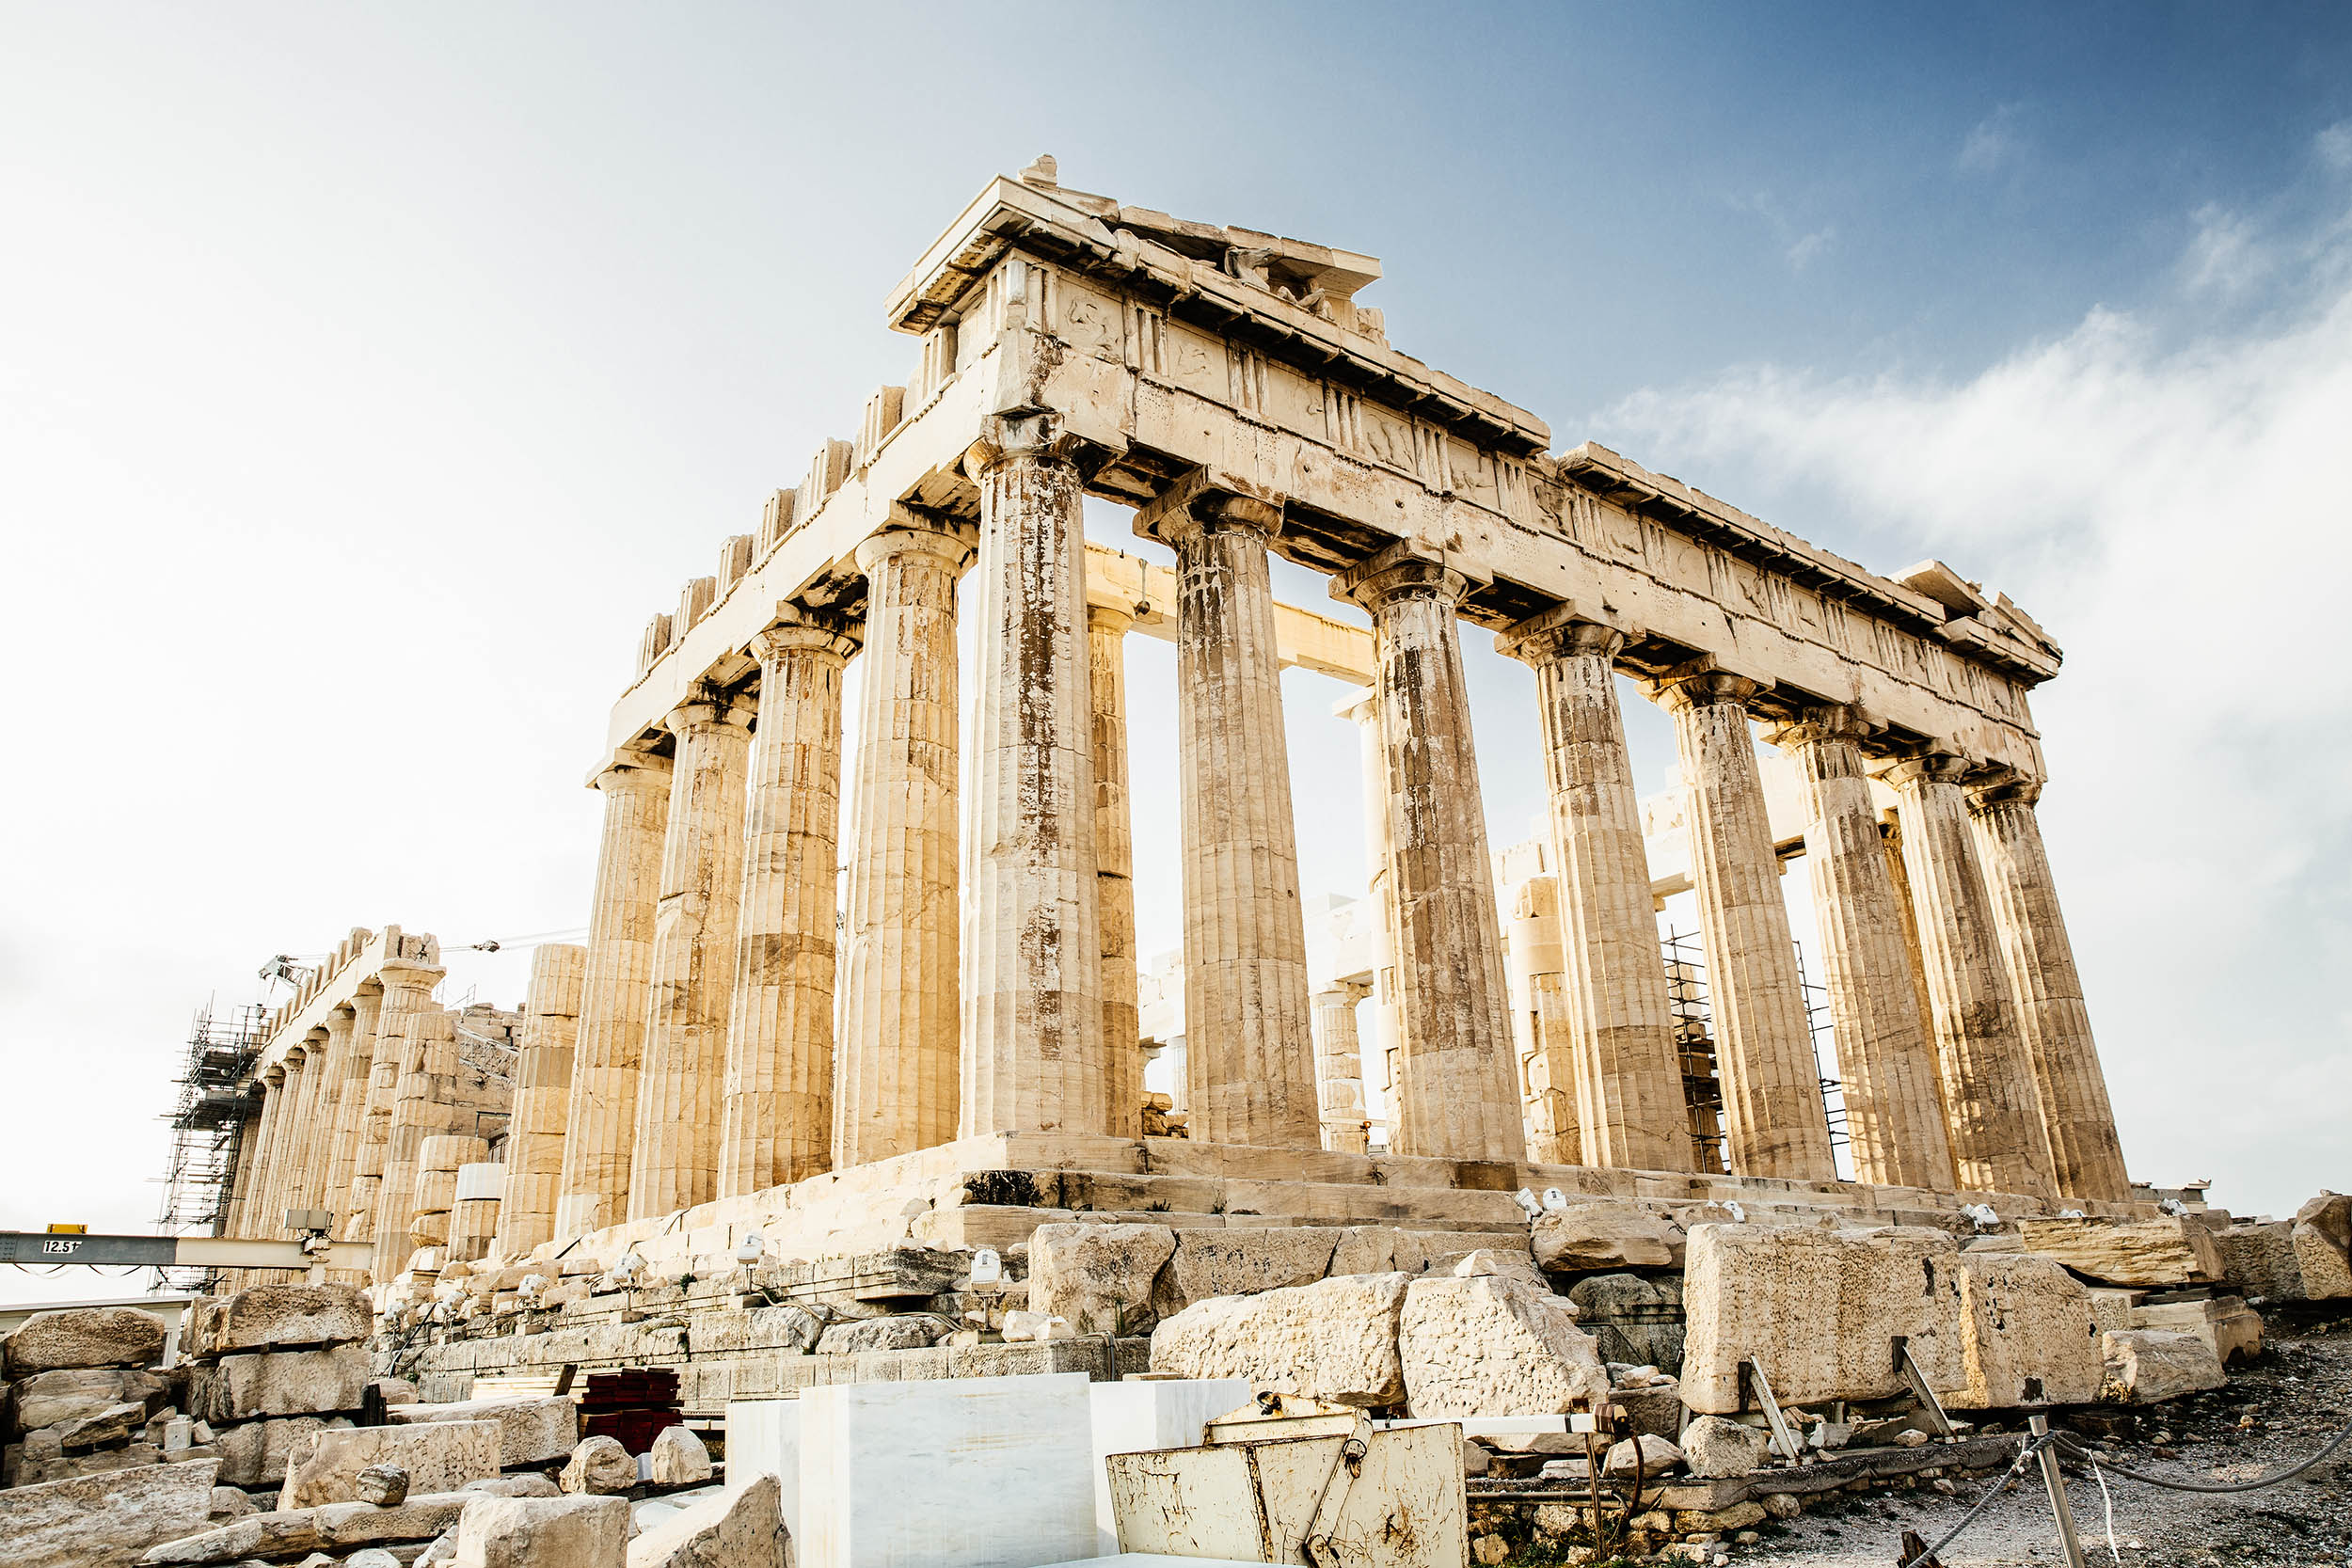 The ruins and crumbling multi Doric-columned building, the Parthenon, Athens